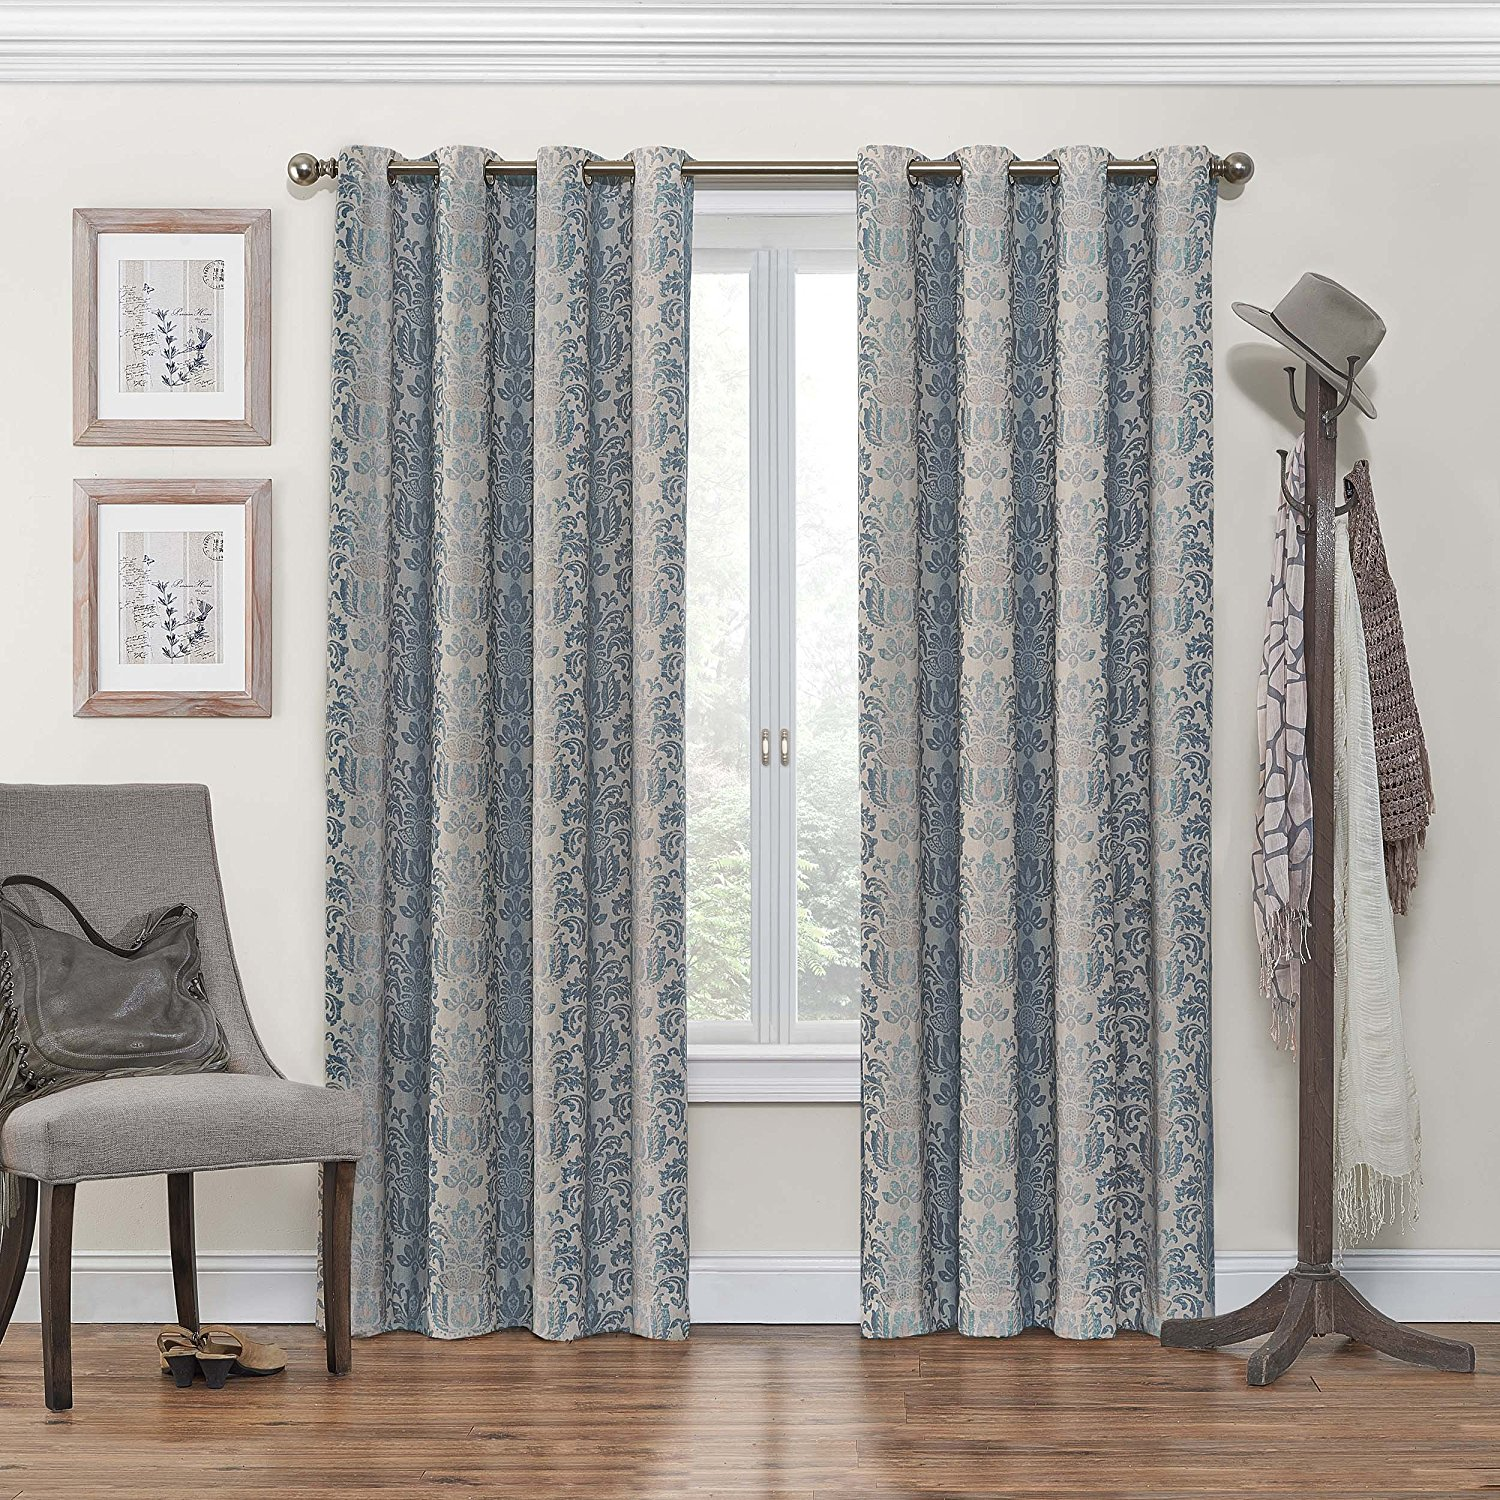 eclipse nadya grommet blackout window curtain panel 95 inch black by eclipse curtains ship from us